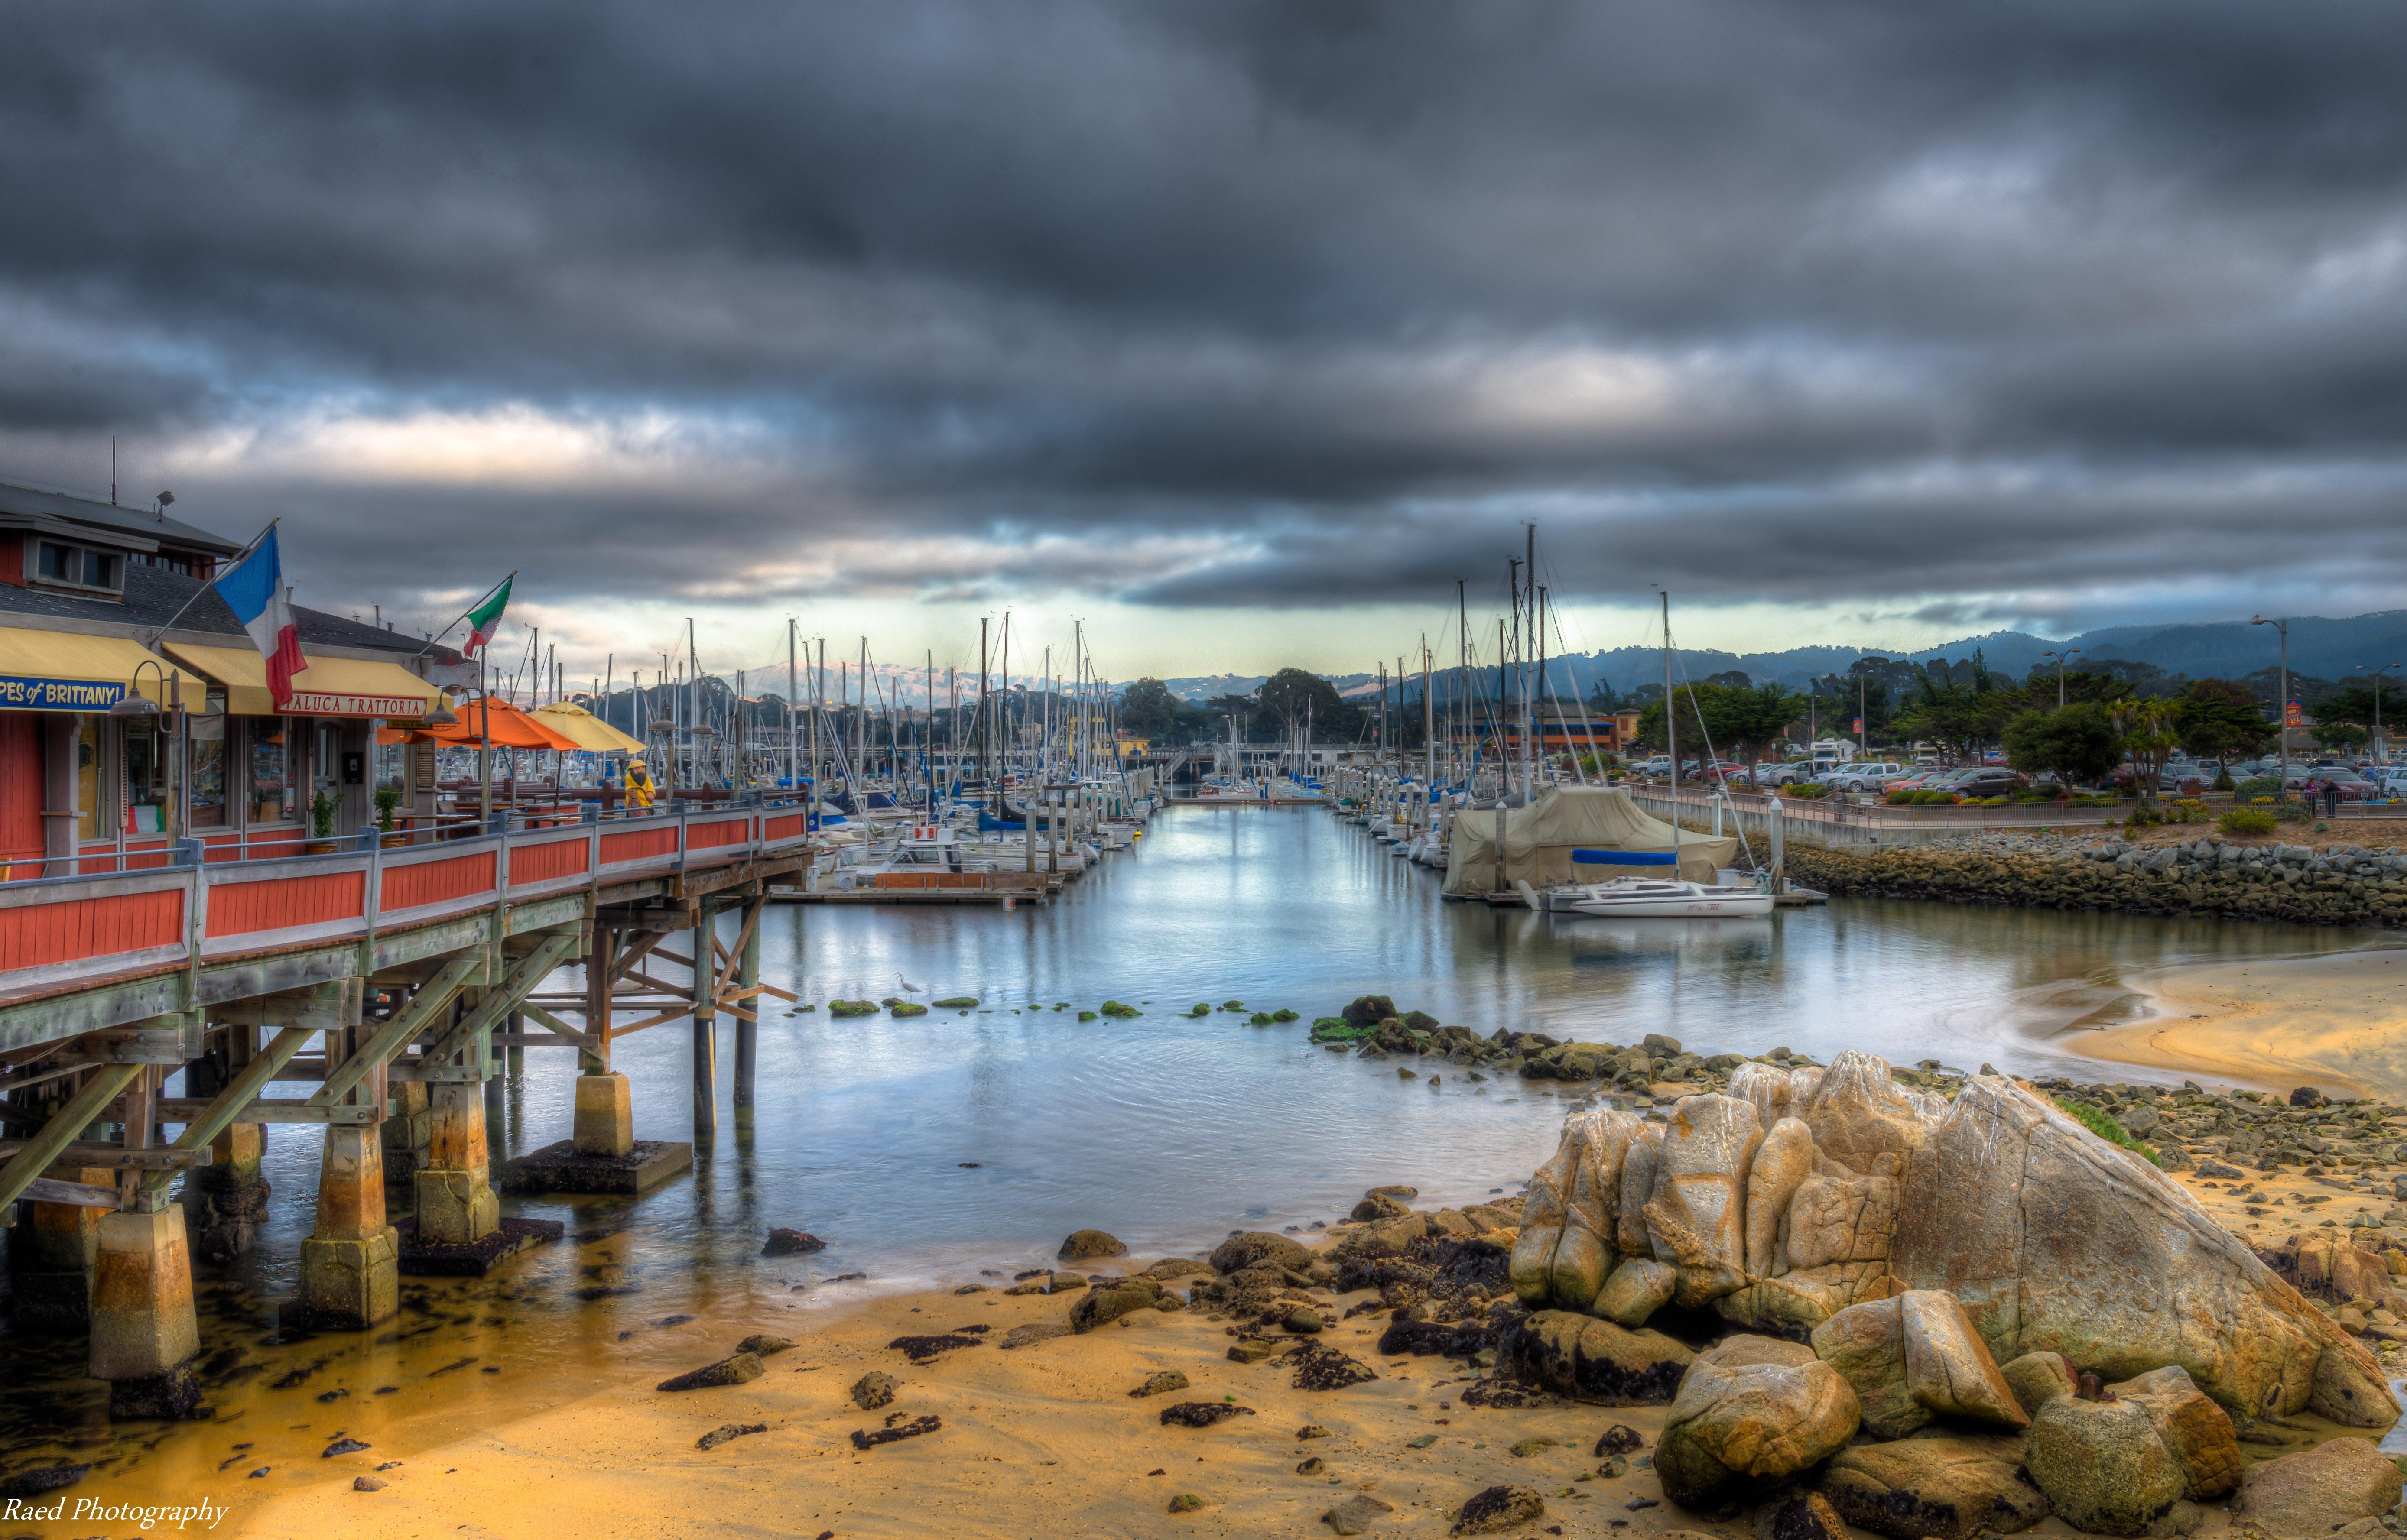 Monterey fisherman's wharf | My Camera Journal